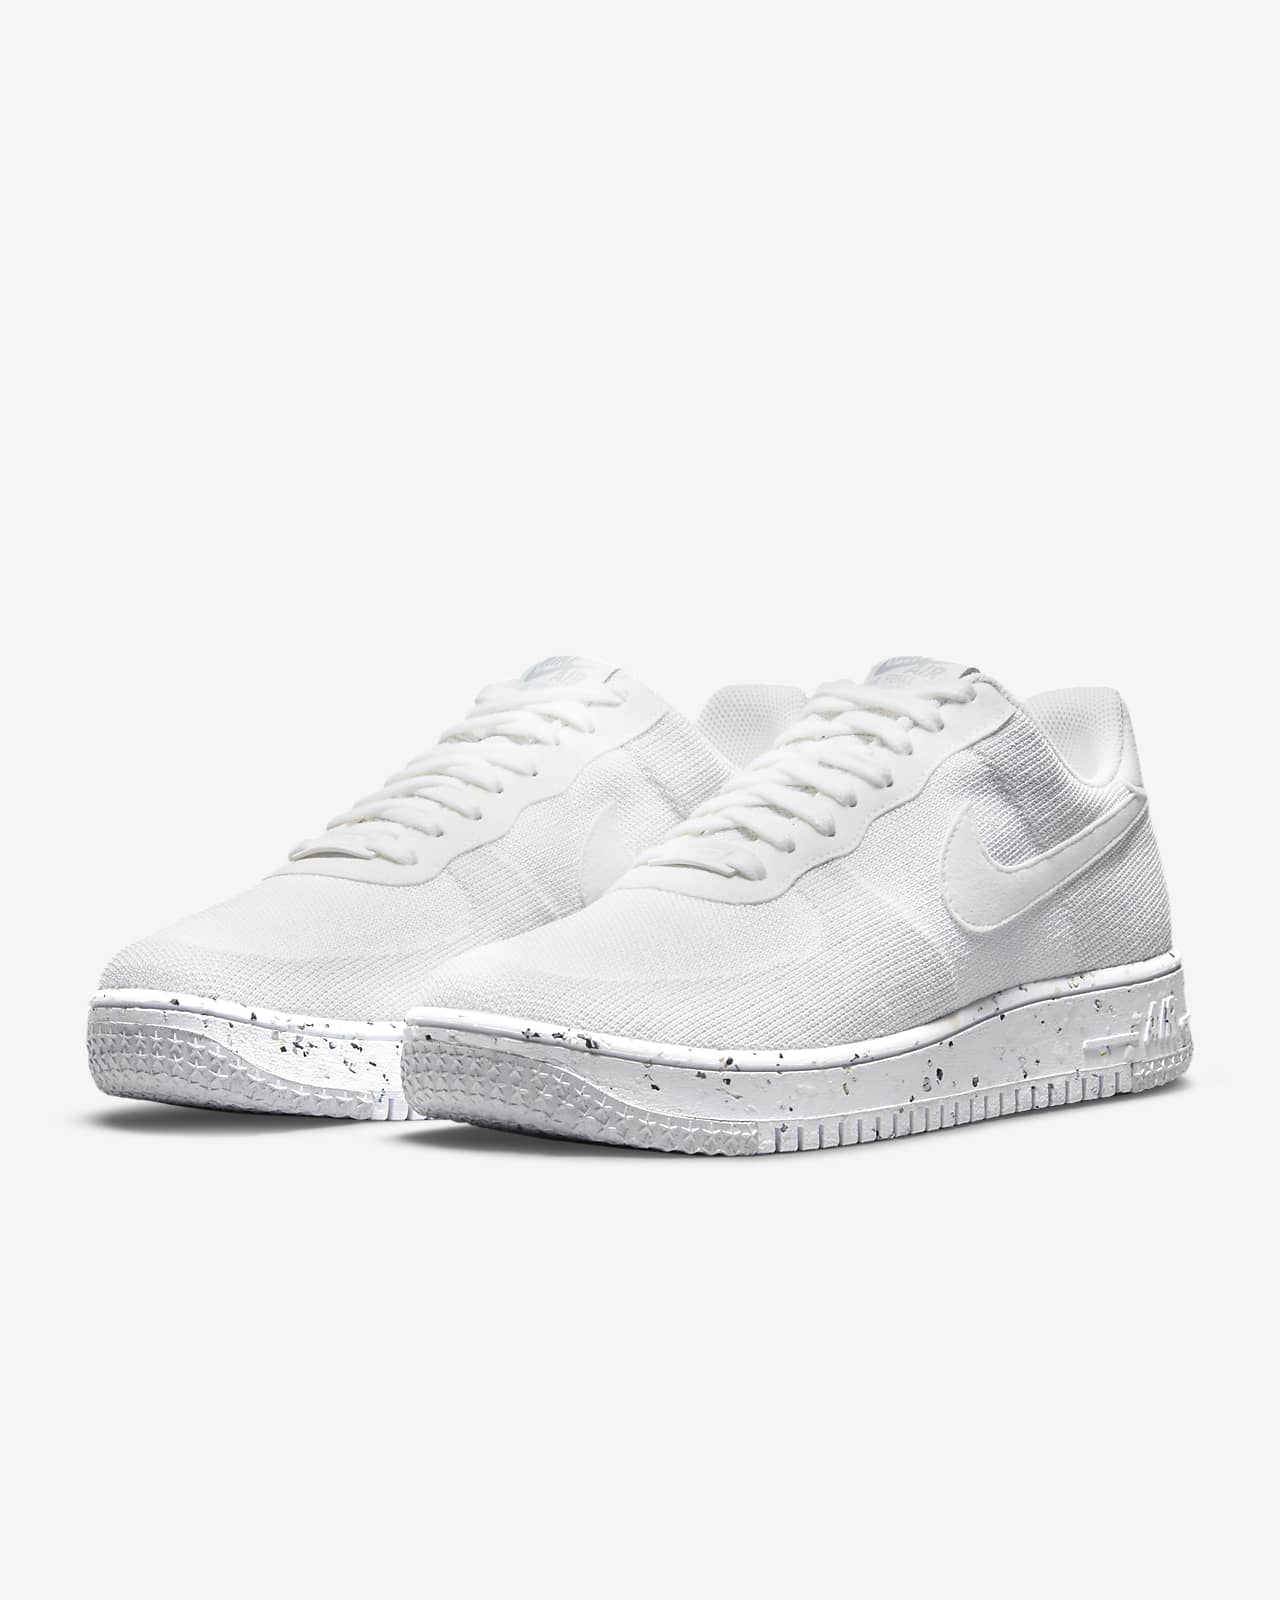 Chaussure Nike Air Force 1 Crater Flyknit pour Homme. Nike LU